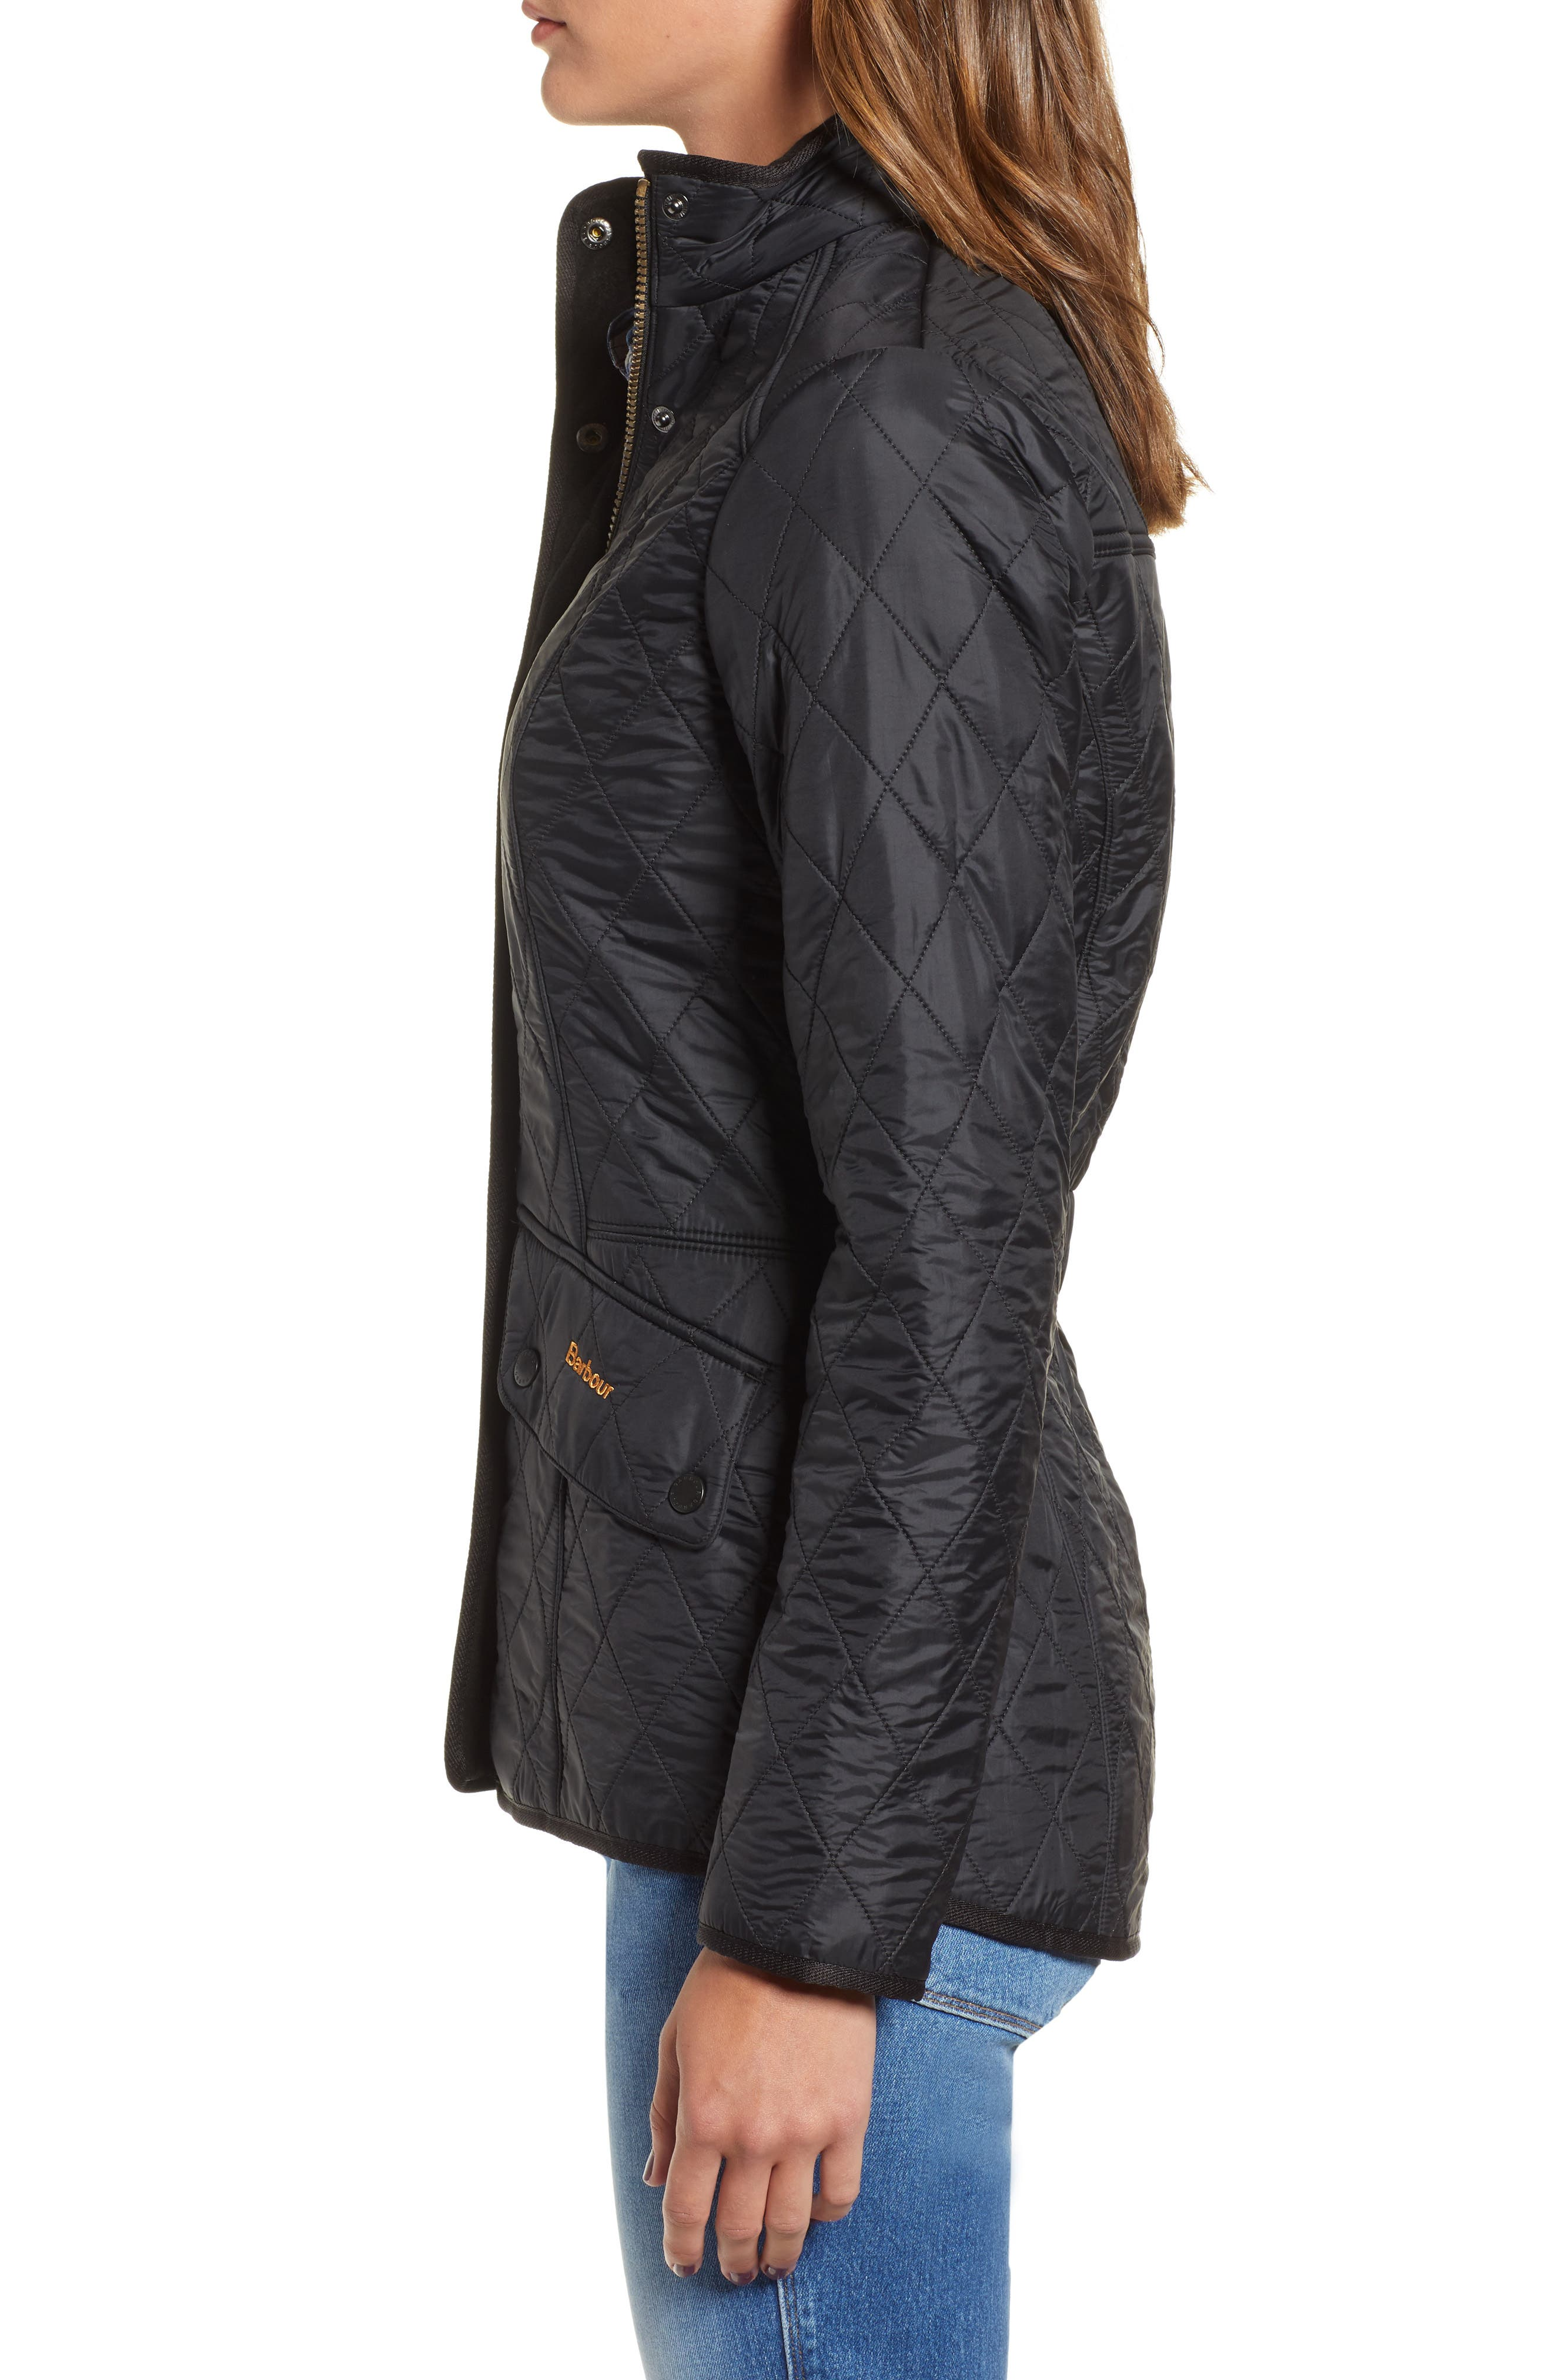 BARBOUR, 'Cavalry' Quilted Jacket, Alternate thumbnail 3, color, 001